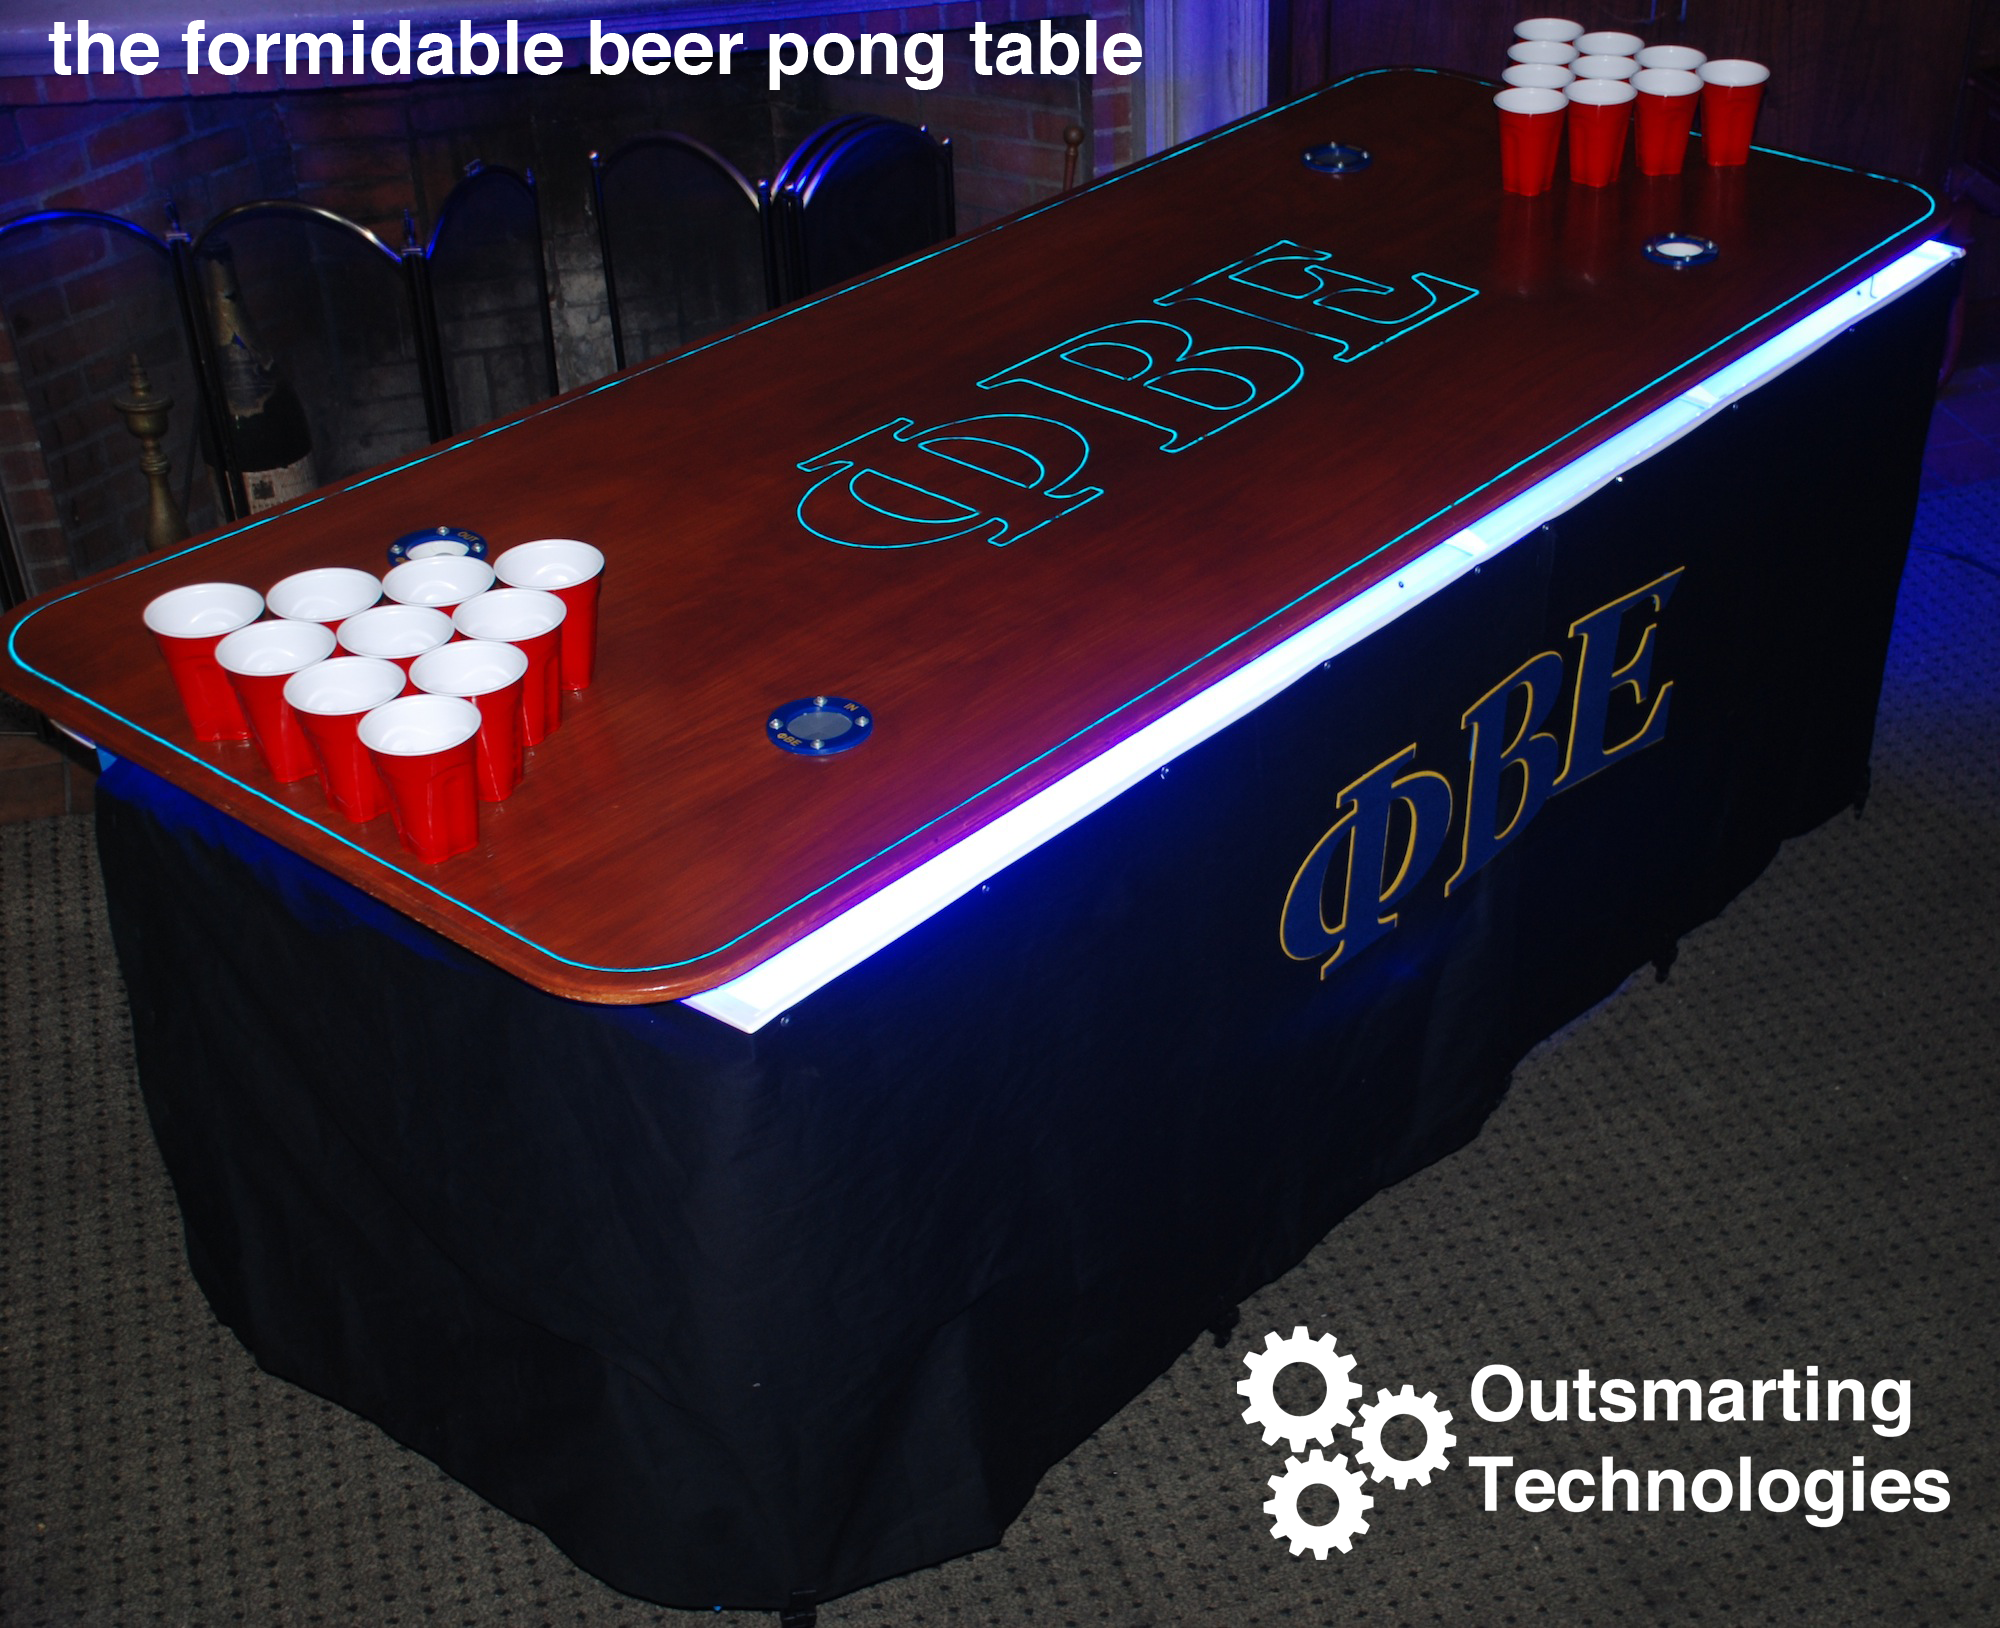 Beer pong table dimensions - How To Make The Best Beer Pong Table On Campus